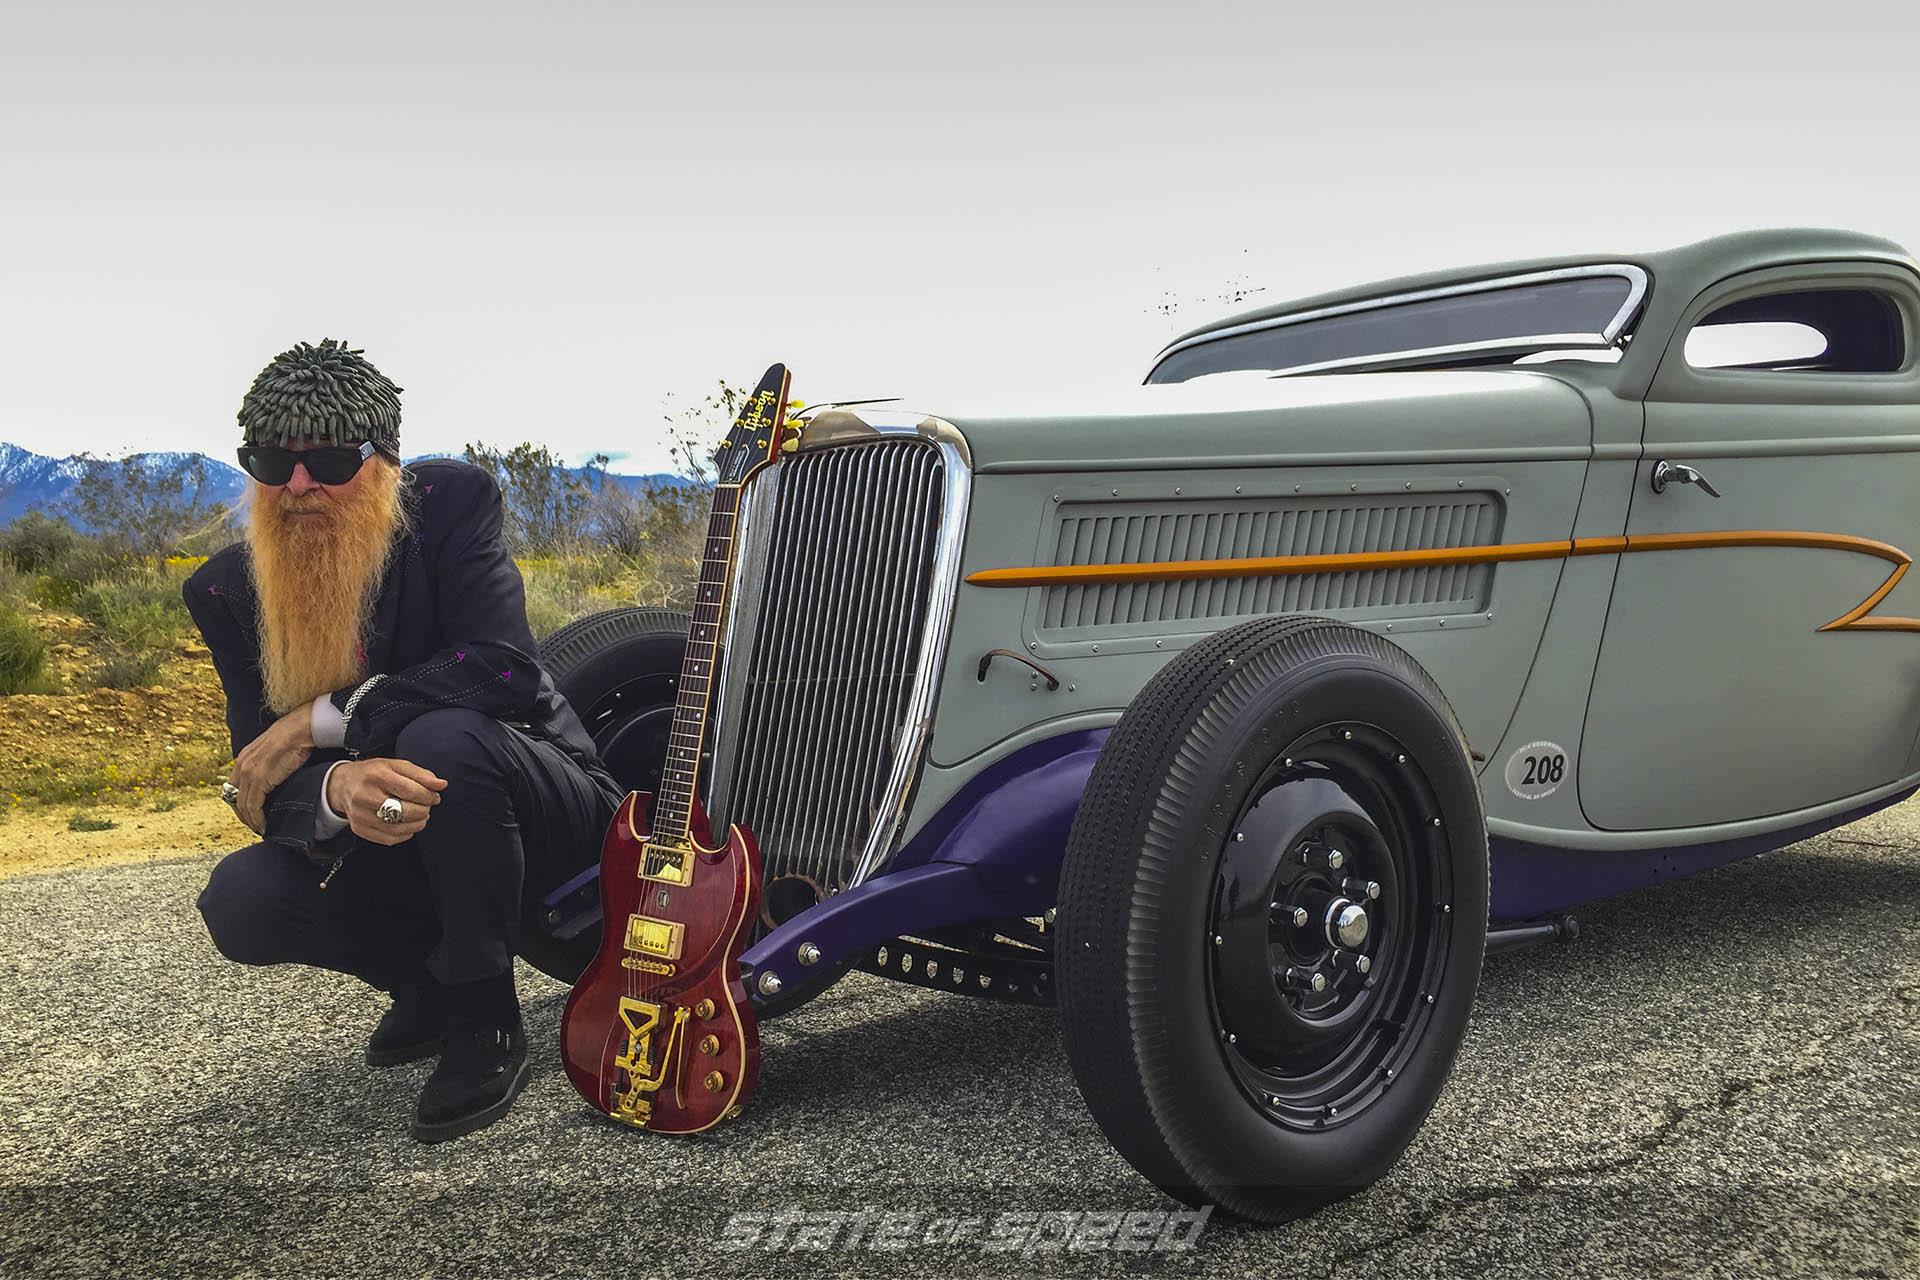 Billy F. Gibbons of ZZ Top with his '34 Ford Deuce and Gibson SG